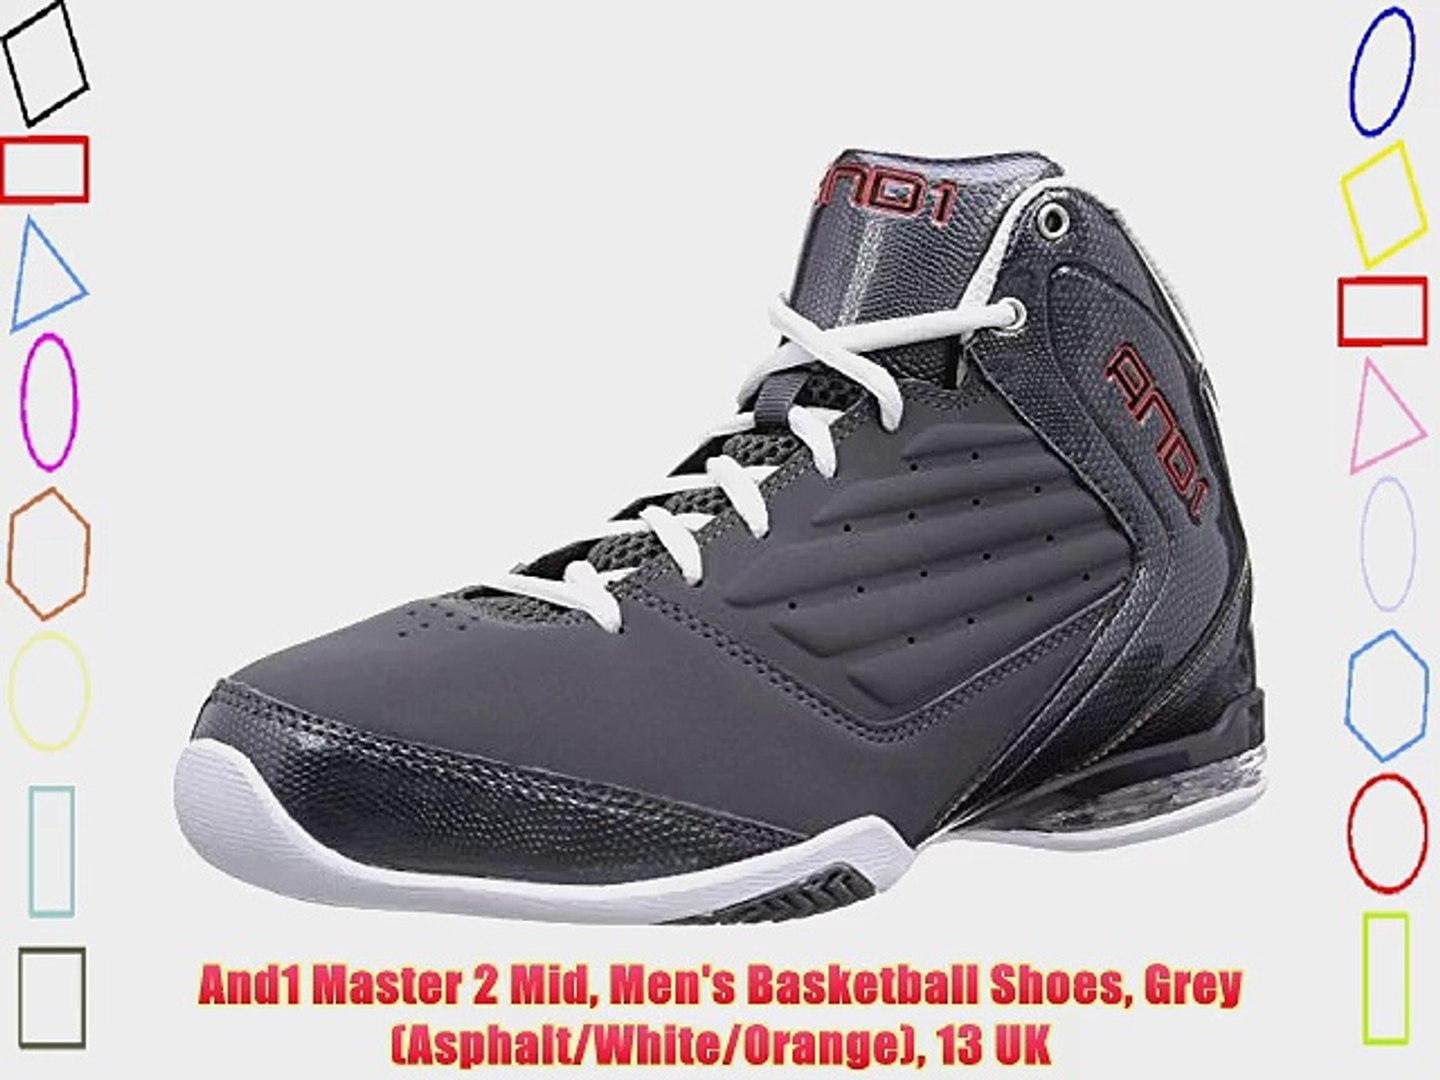 And1 Master 2 Mid Men's Basketball Shoes Grey (AsphaltWhite